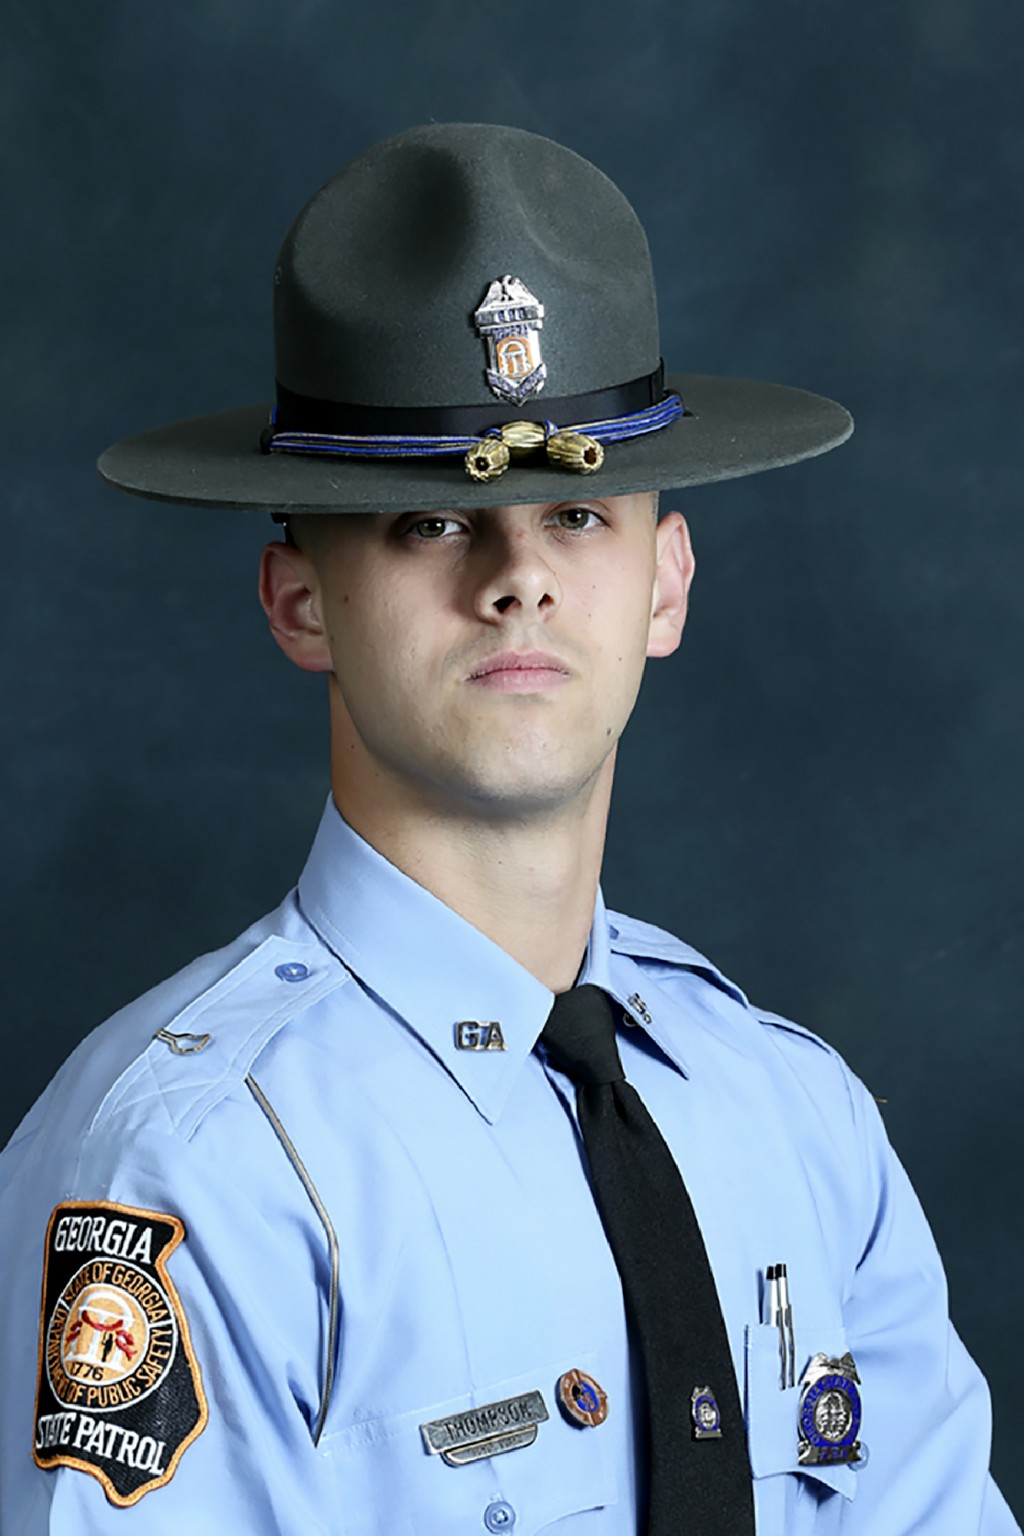 In this undated photo released by the Georgia Department of Public Safety, State trooper Jacob Gordon Thompson is seen in an official portrait. The Ge...